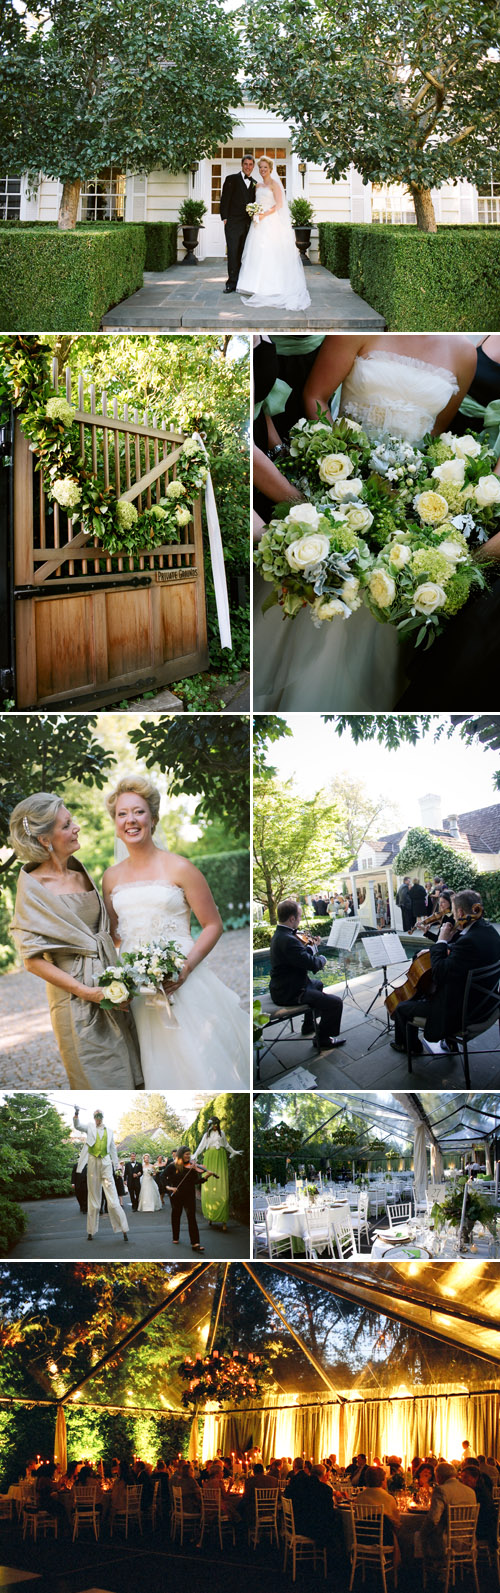 green and white Pacific Northwest garden wedding planned by Jacky Grotle of Event Success and photographed by Joann Arruda